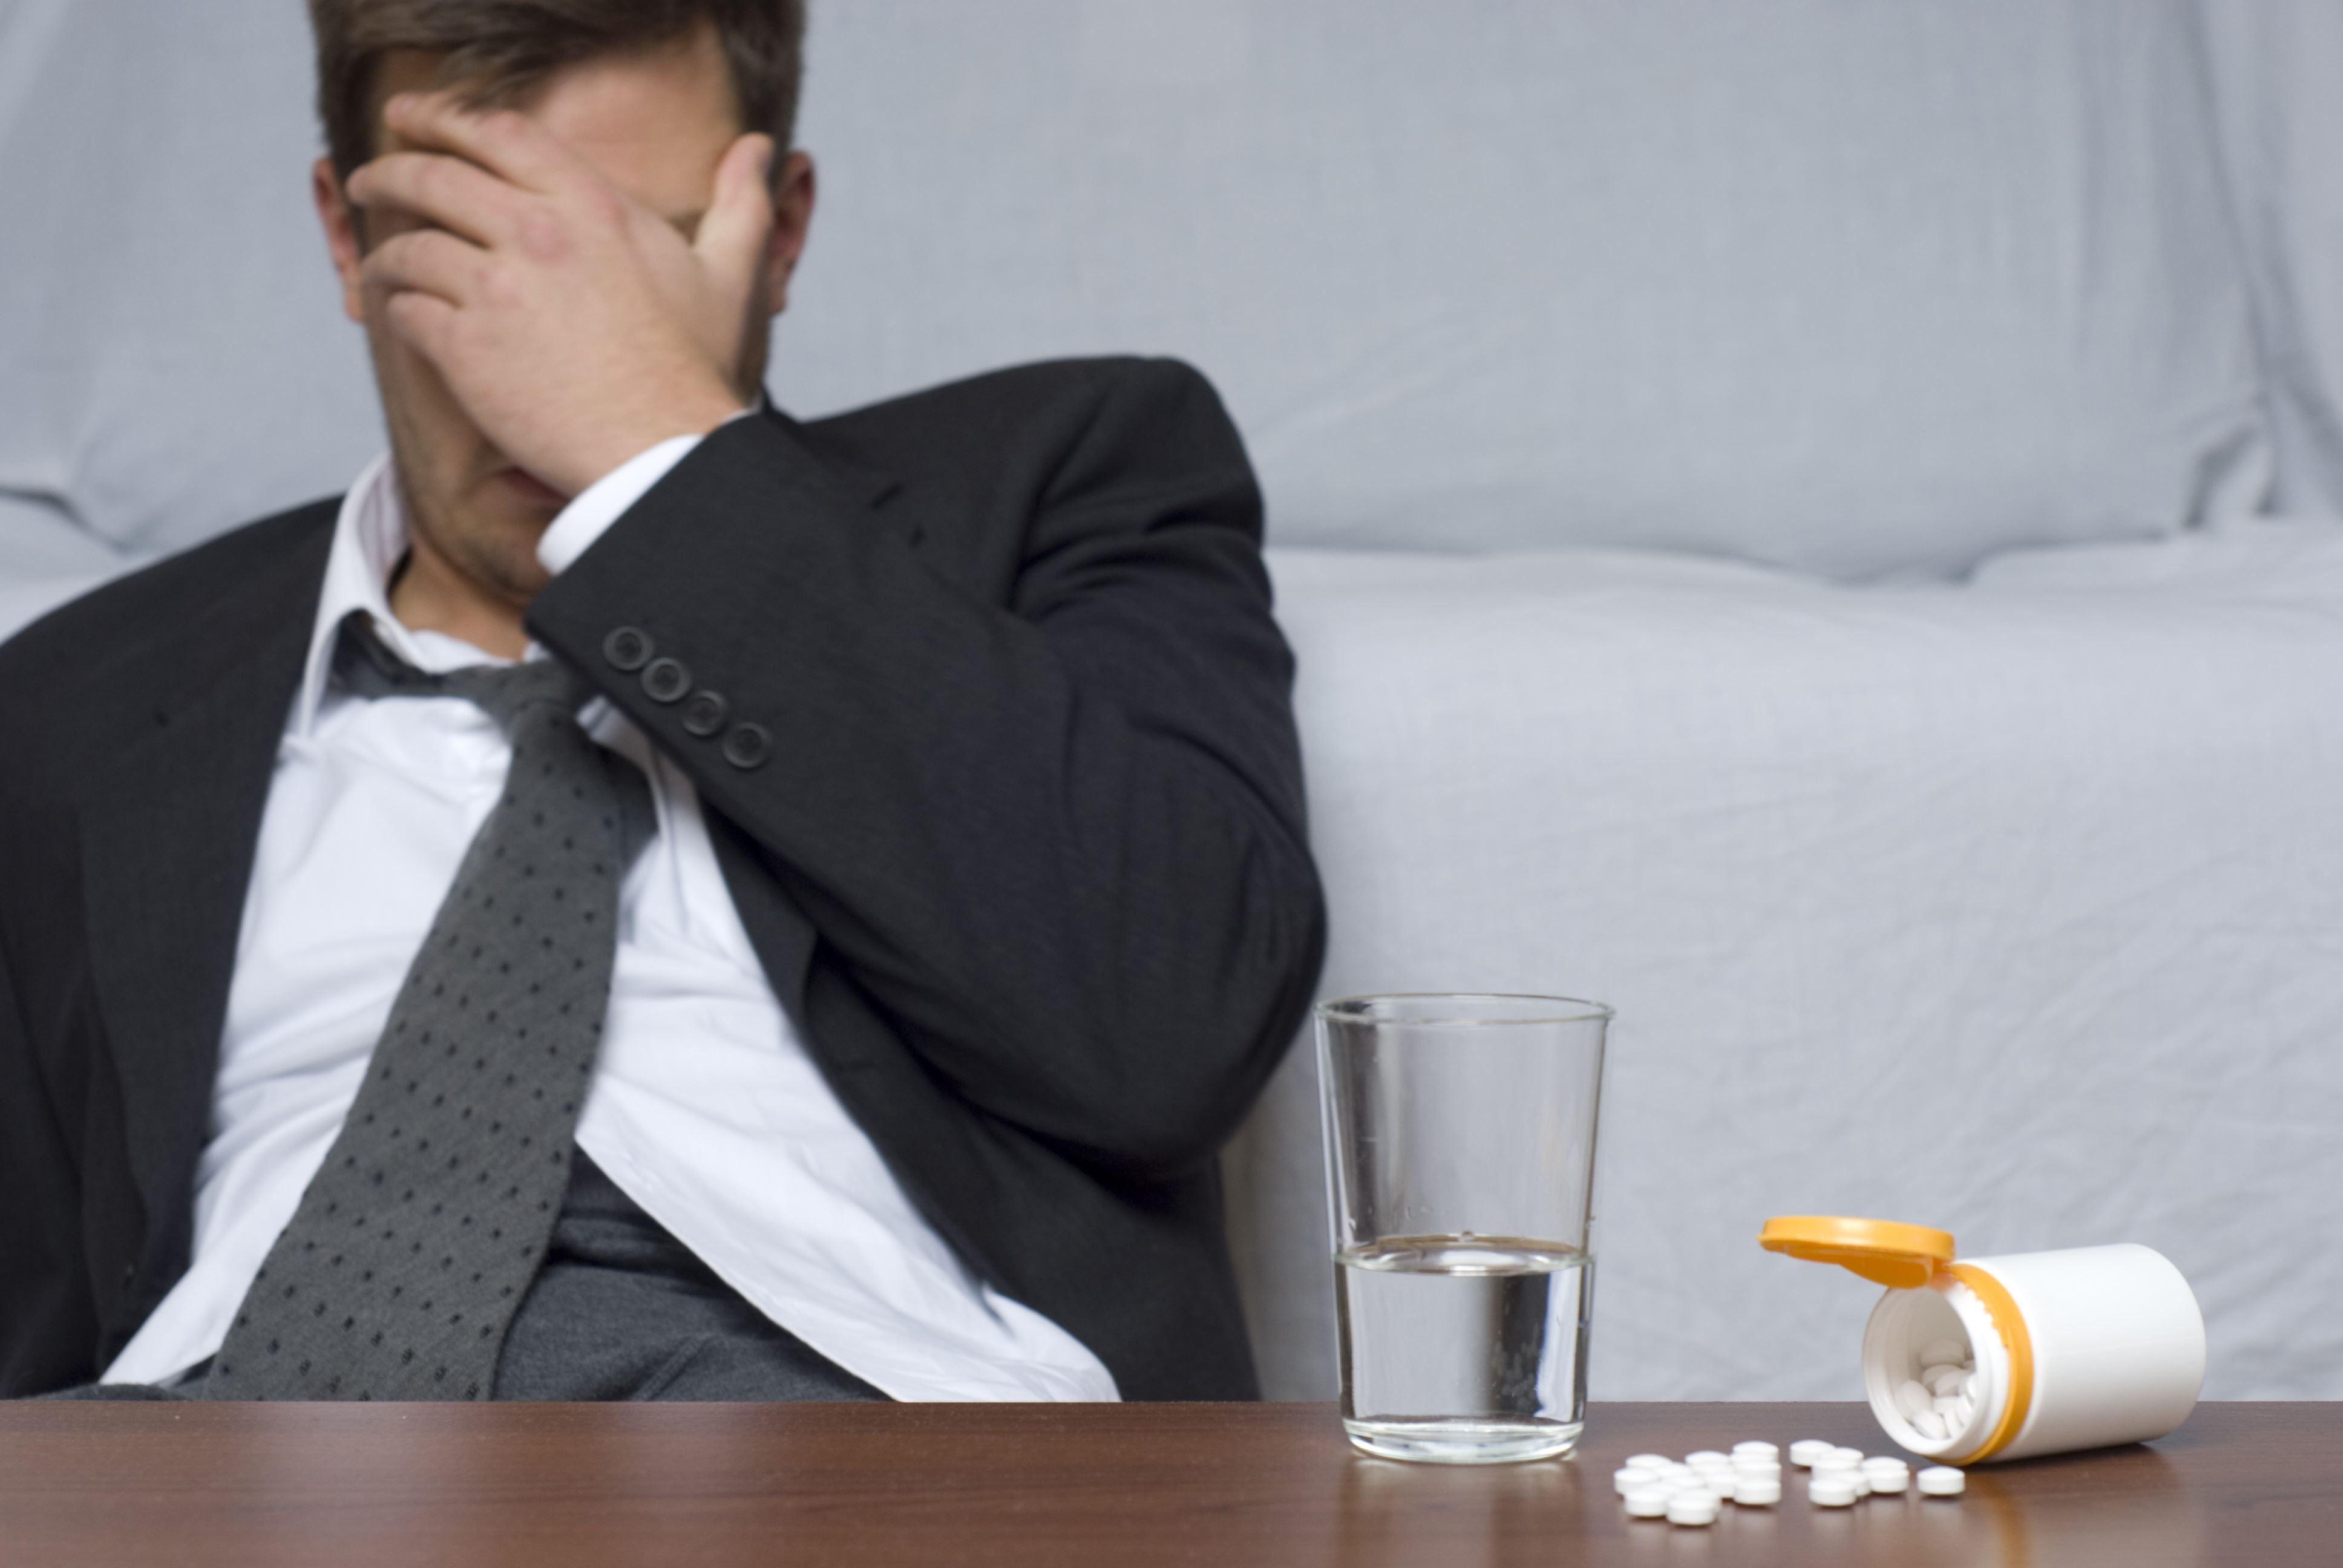 Drug and alcohol abuse: Texas parents face risks if they fail to